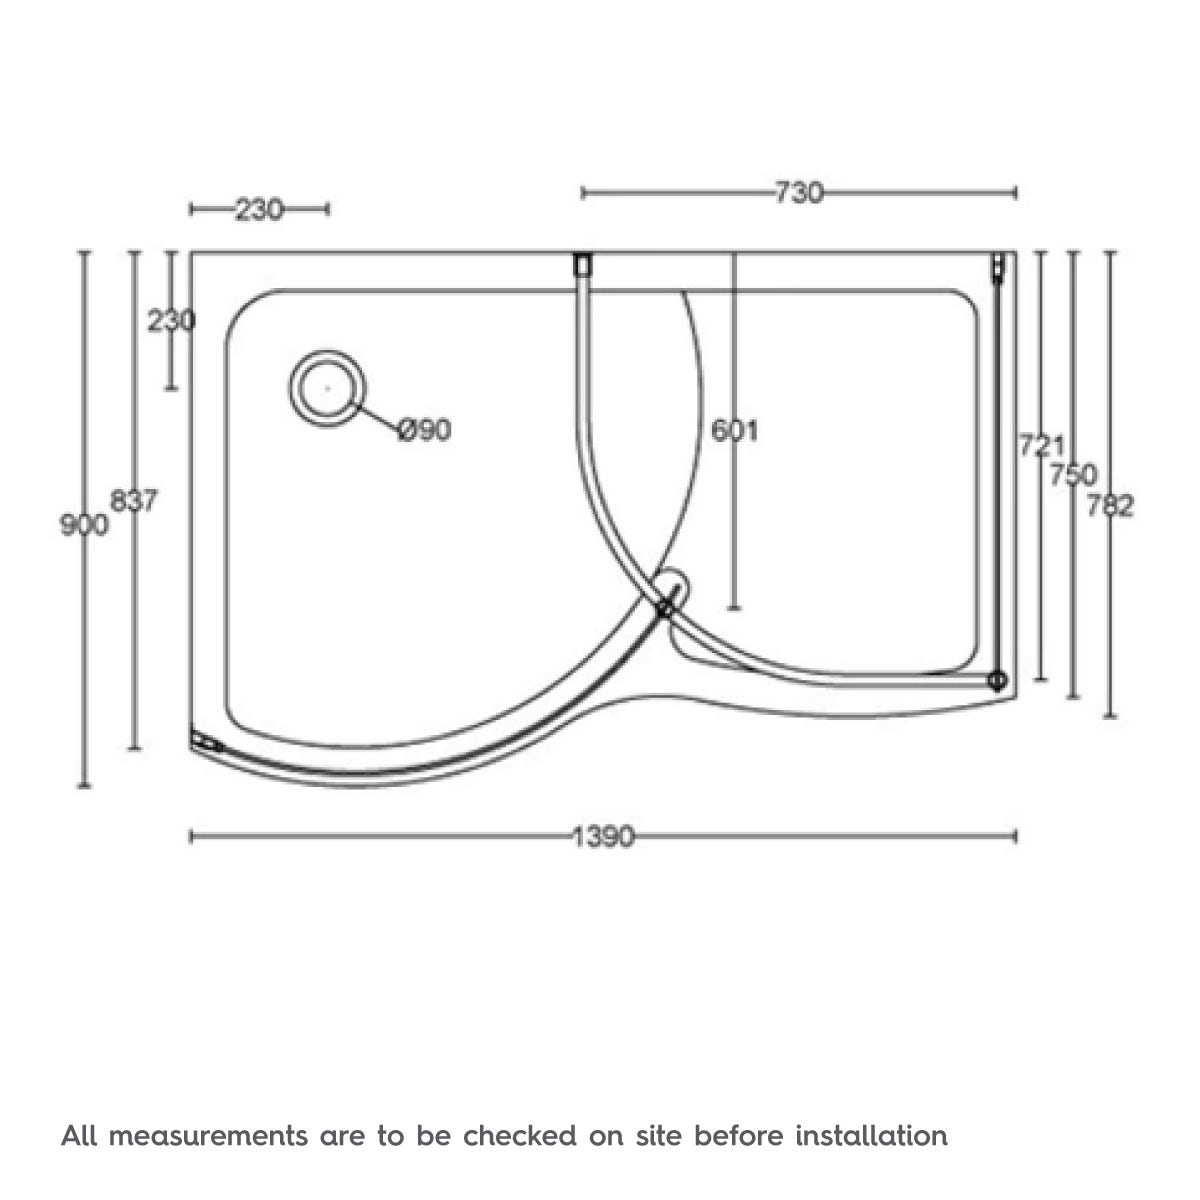 Dimensions for Curved Walk In Shower Enclosure Tray RH